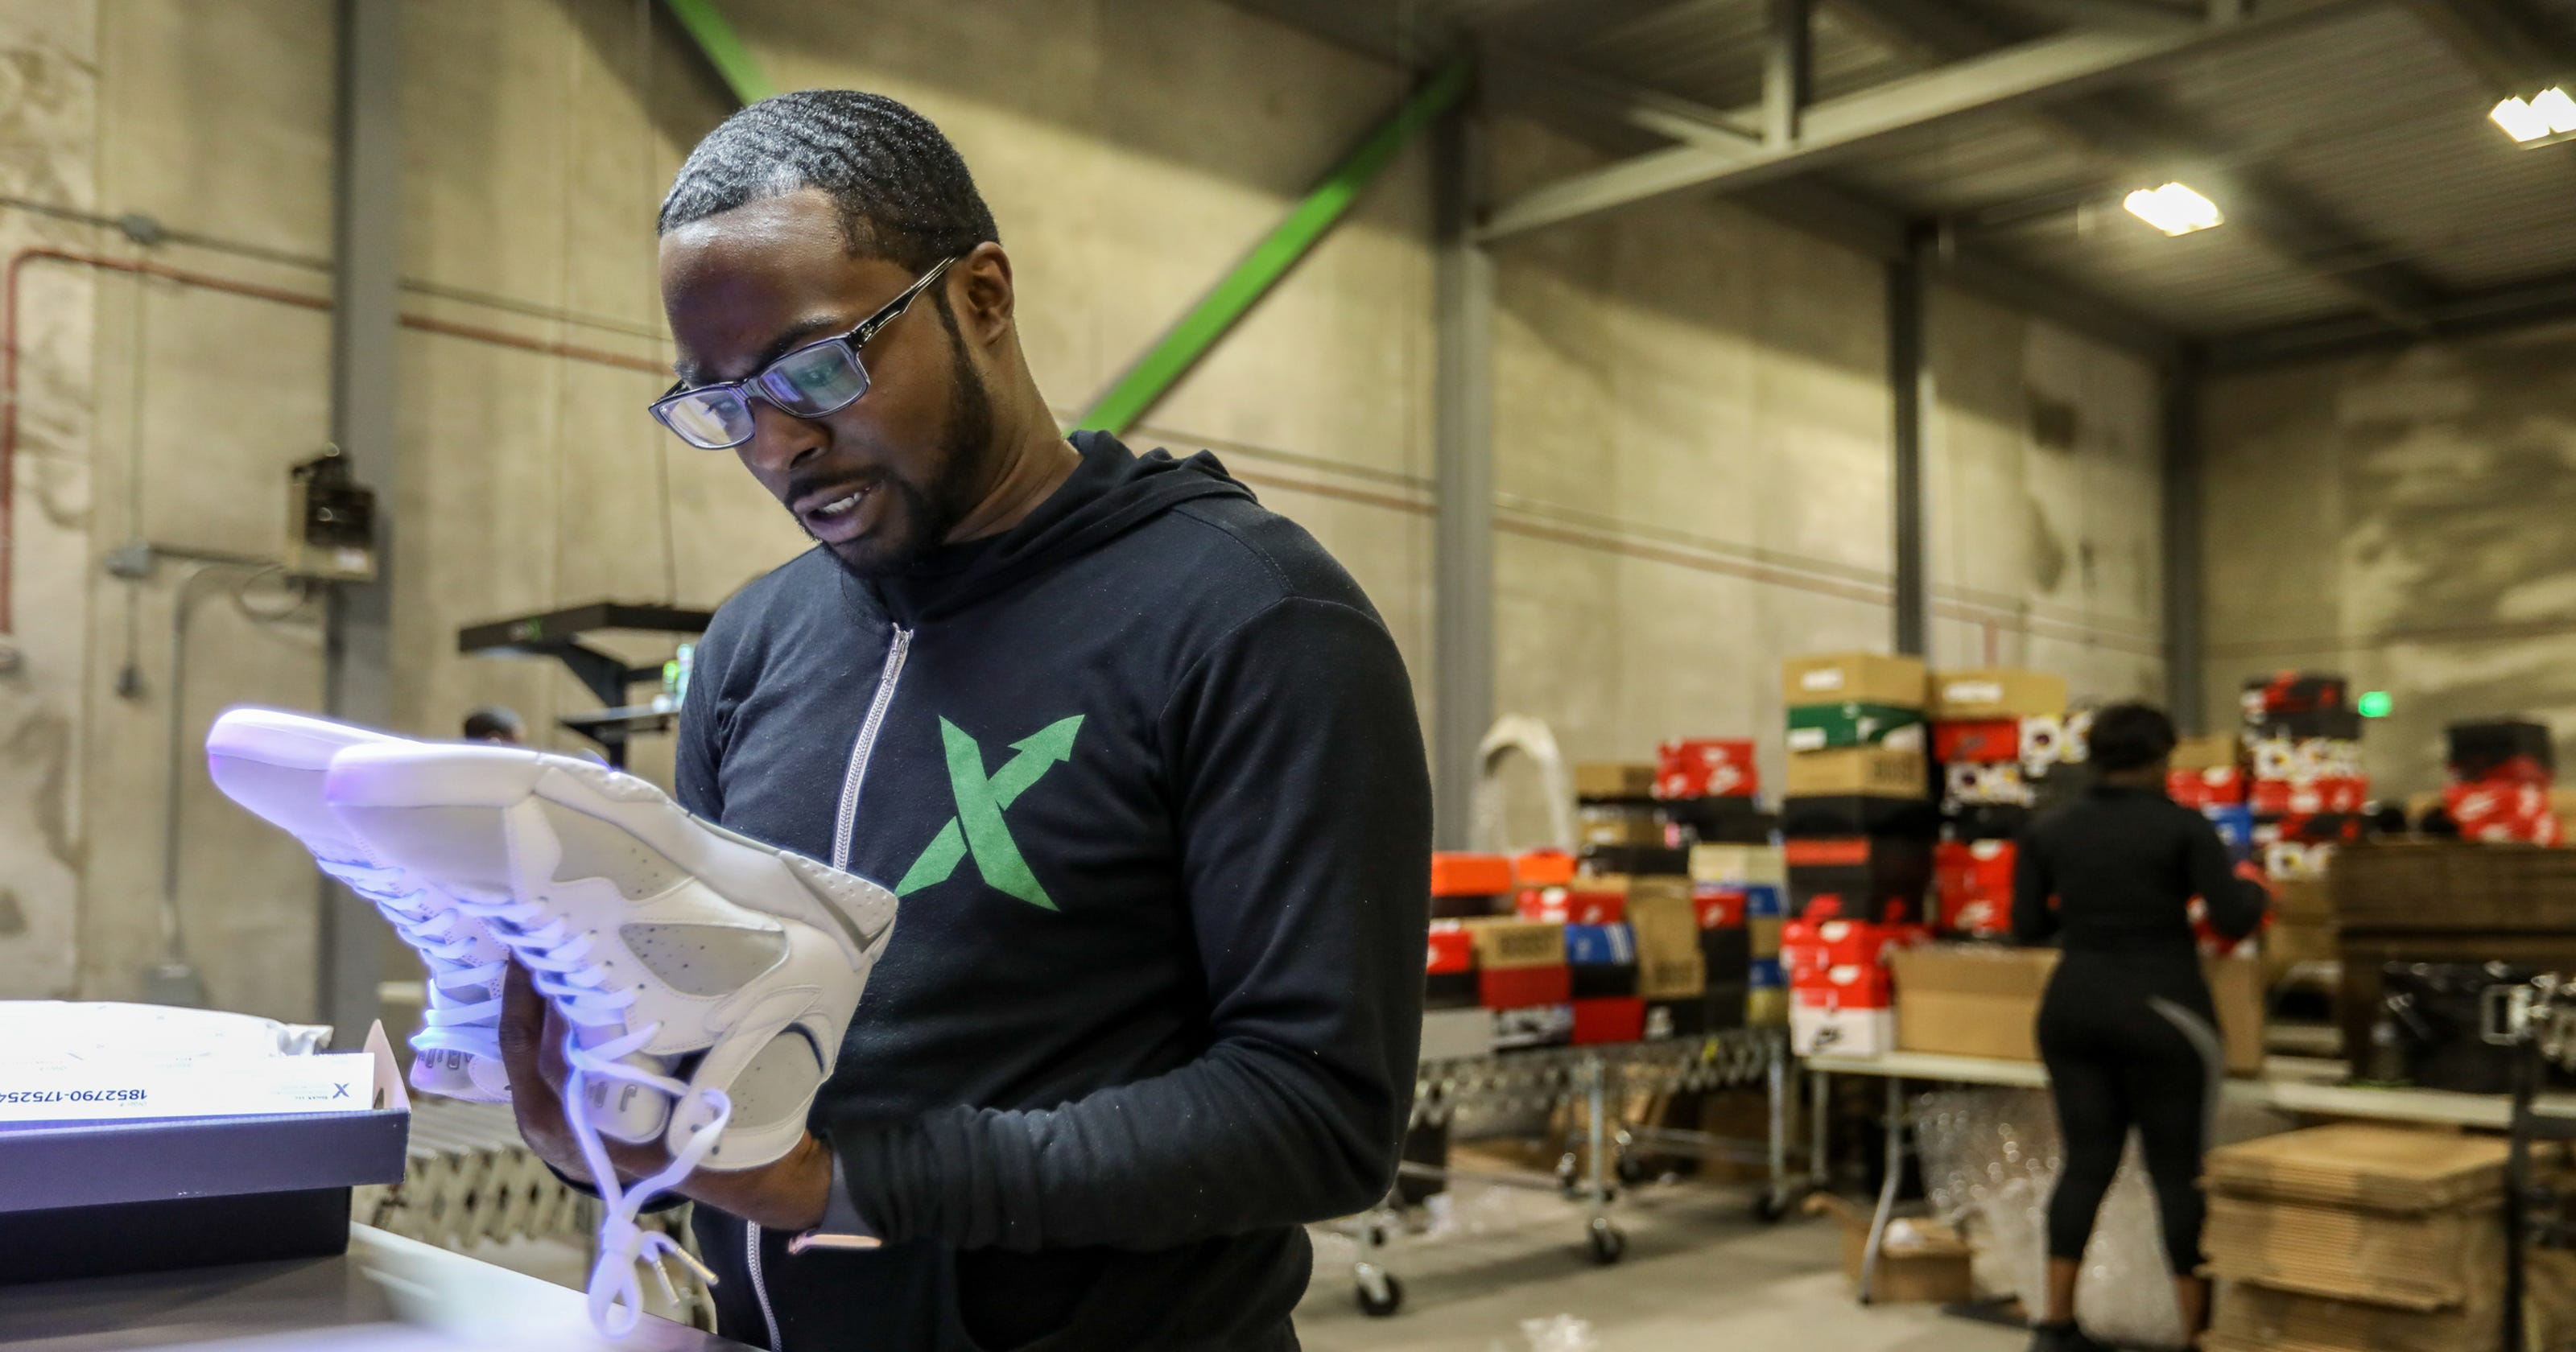 Fast-growing Detroit startup StockX sniffs out fake sneakers a091e7551